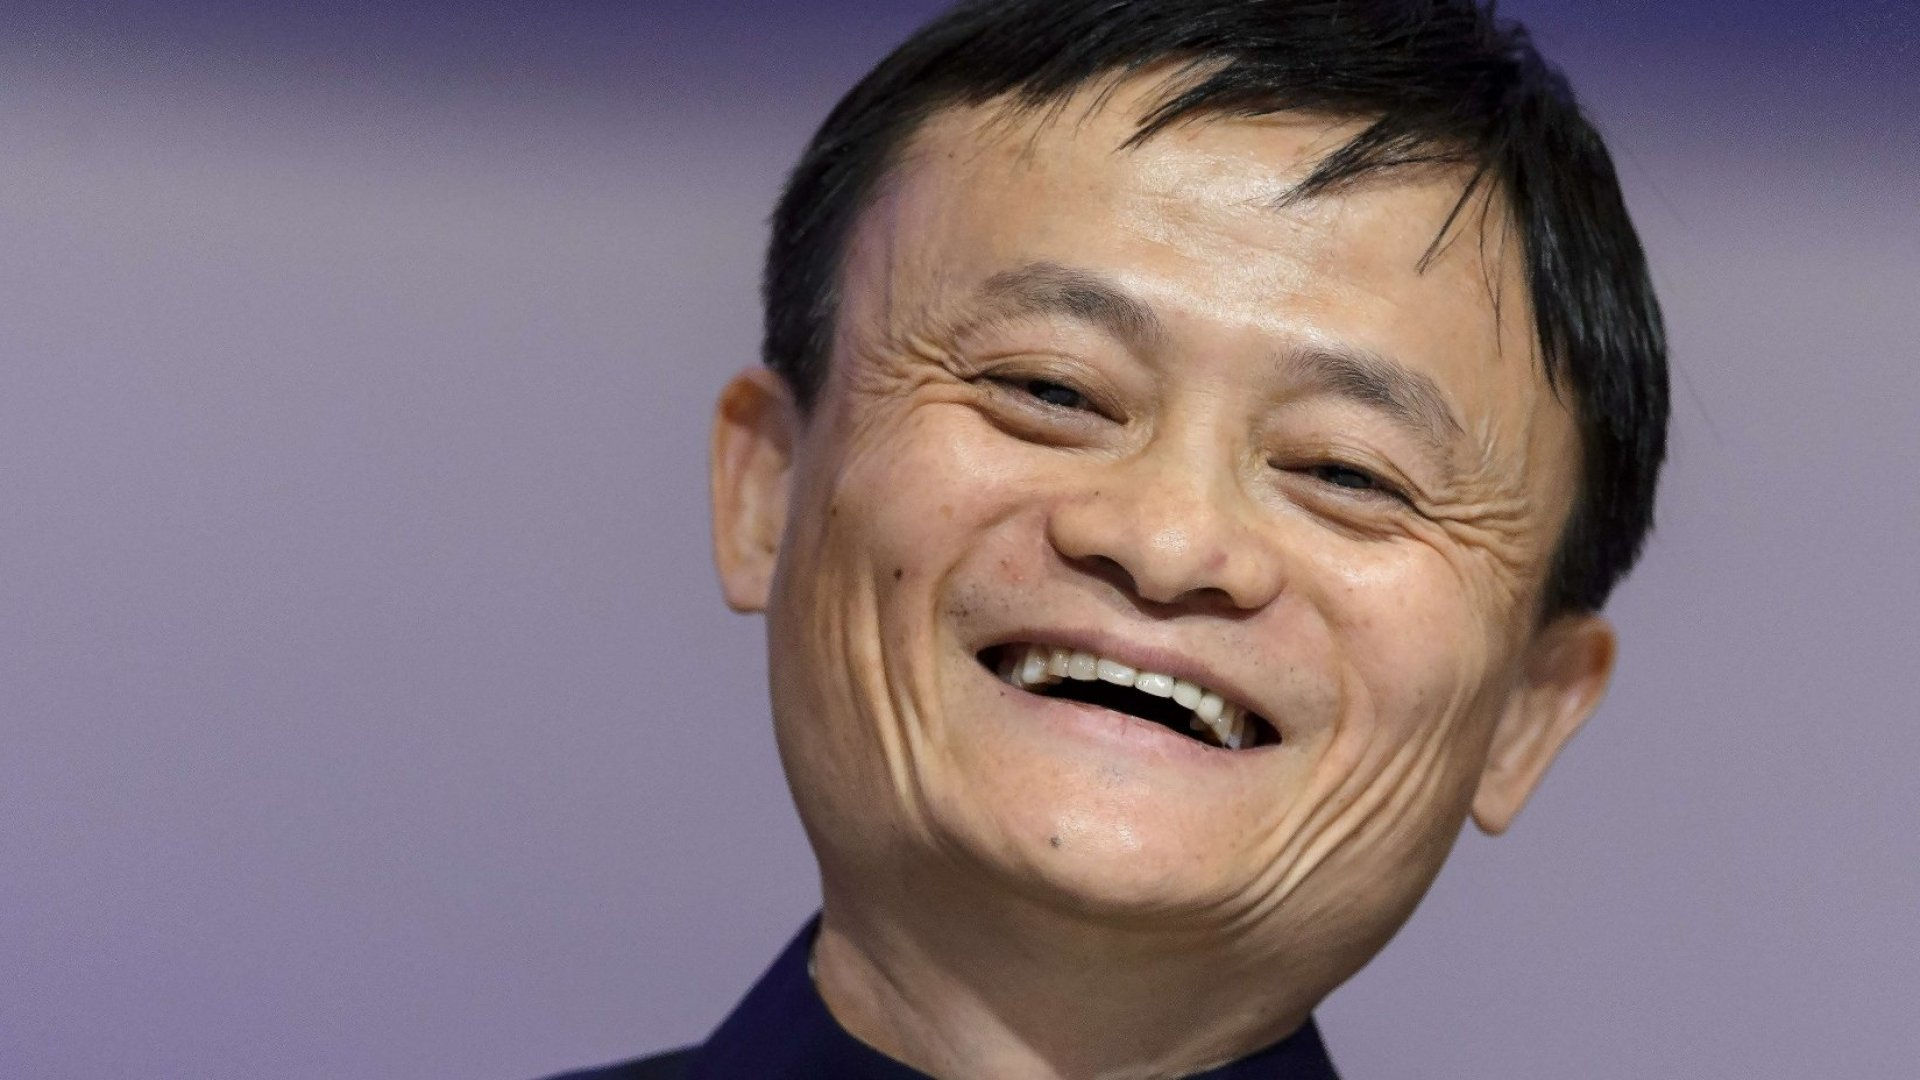 LinkedIn CEO Jeff Weiner, Billionaire Jack Ma, and This Famous Brain Surgeon Agree: You Will Need This 1 Rare Skill to Be Successful